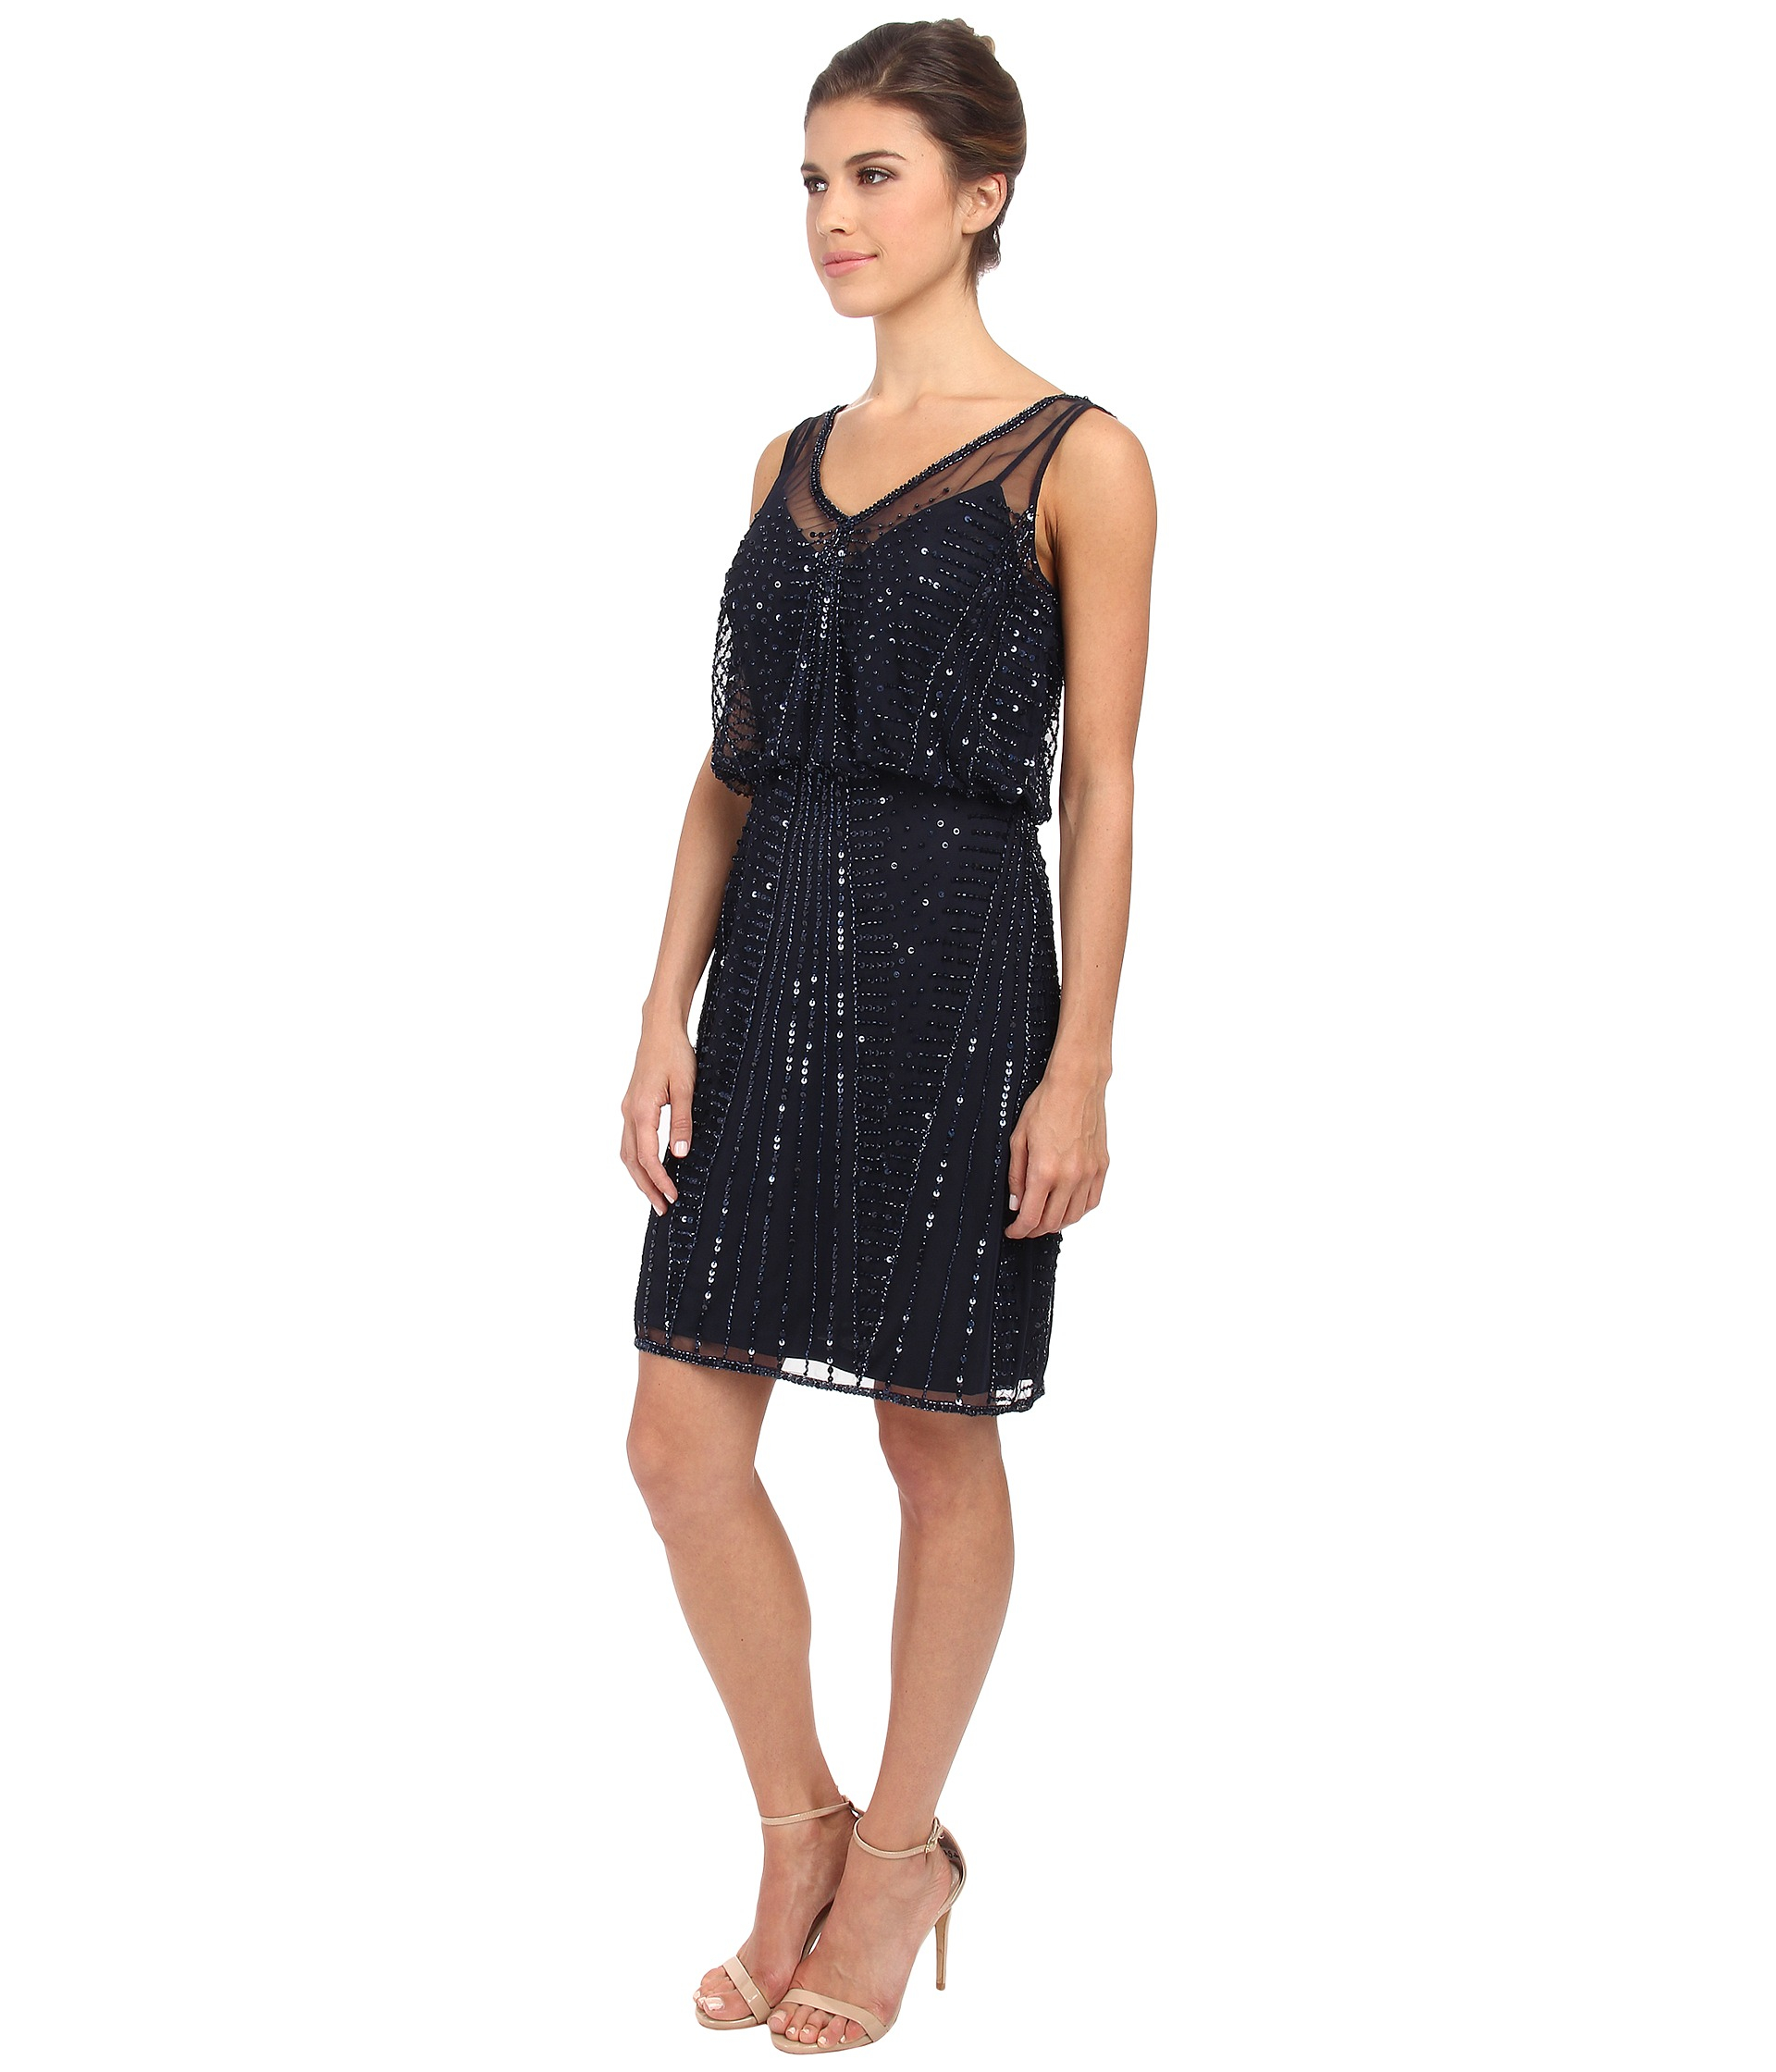 31019694a3e Lyst - Adrianna Papell Short Beaded Cocktail Dress in Blue